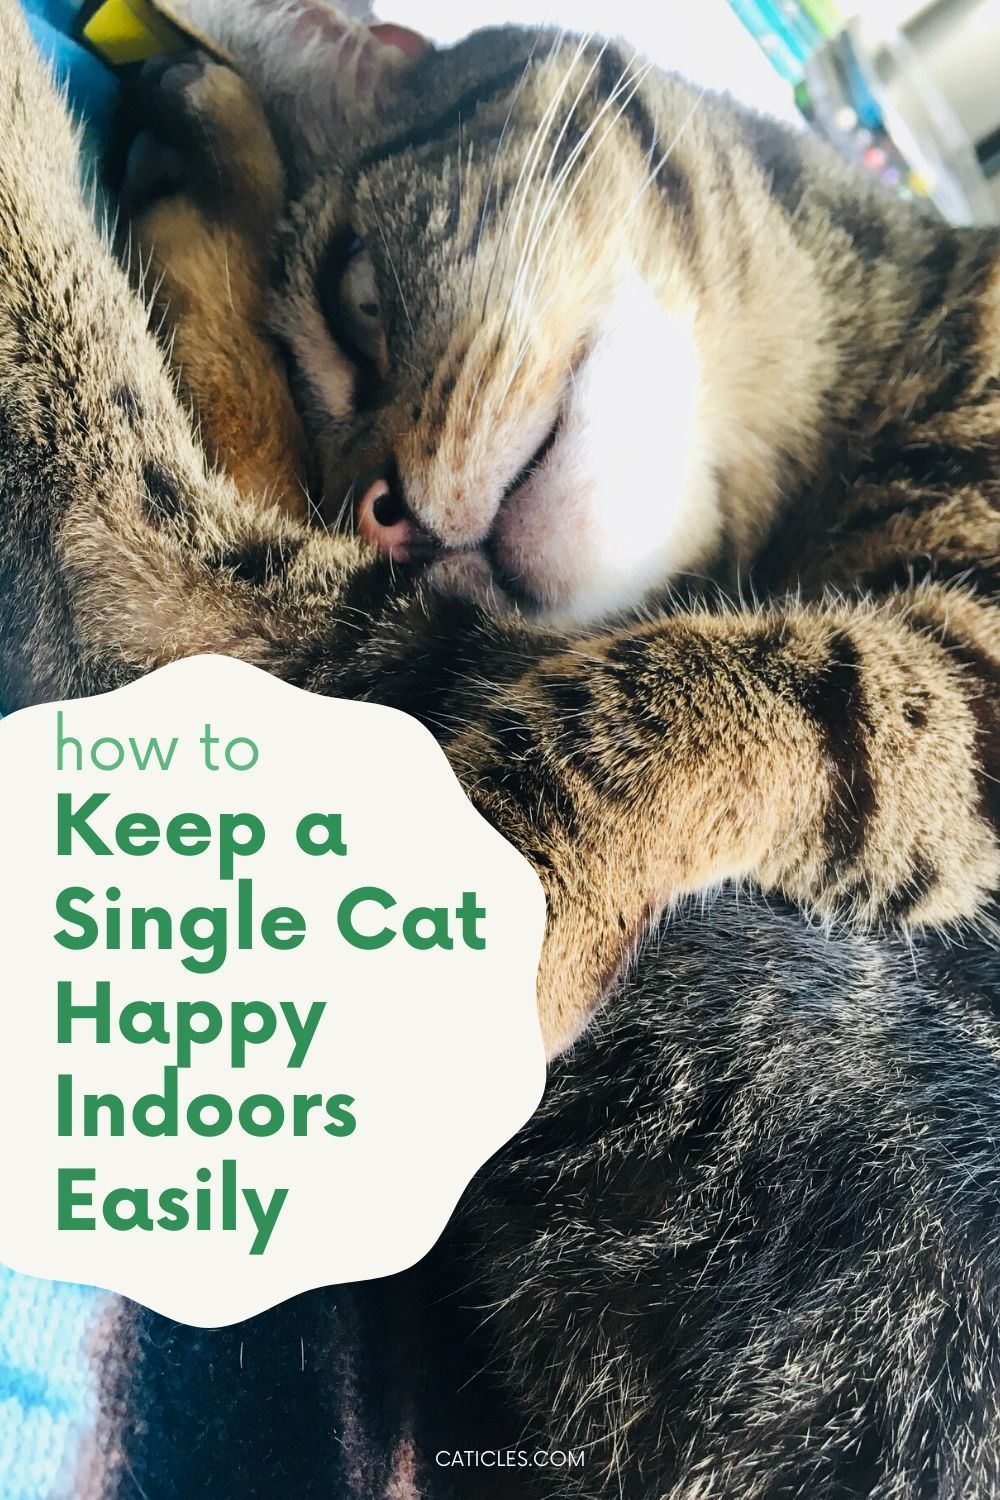 7 Single Cat Household Hacks That Make Your Cat Less Lonely Caticles Cats Cats And Kittens Kitten Care